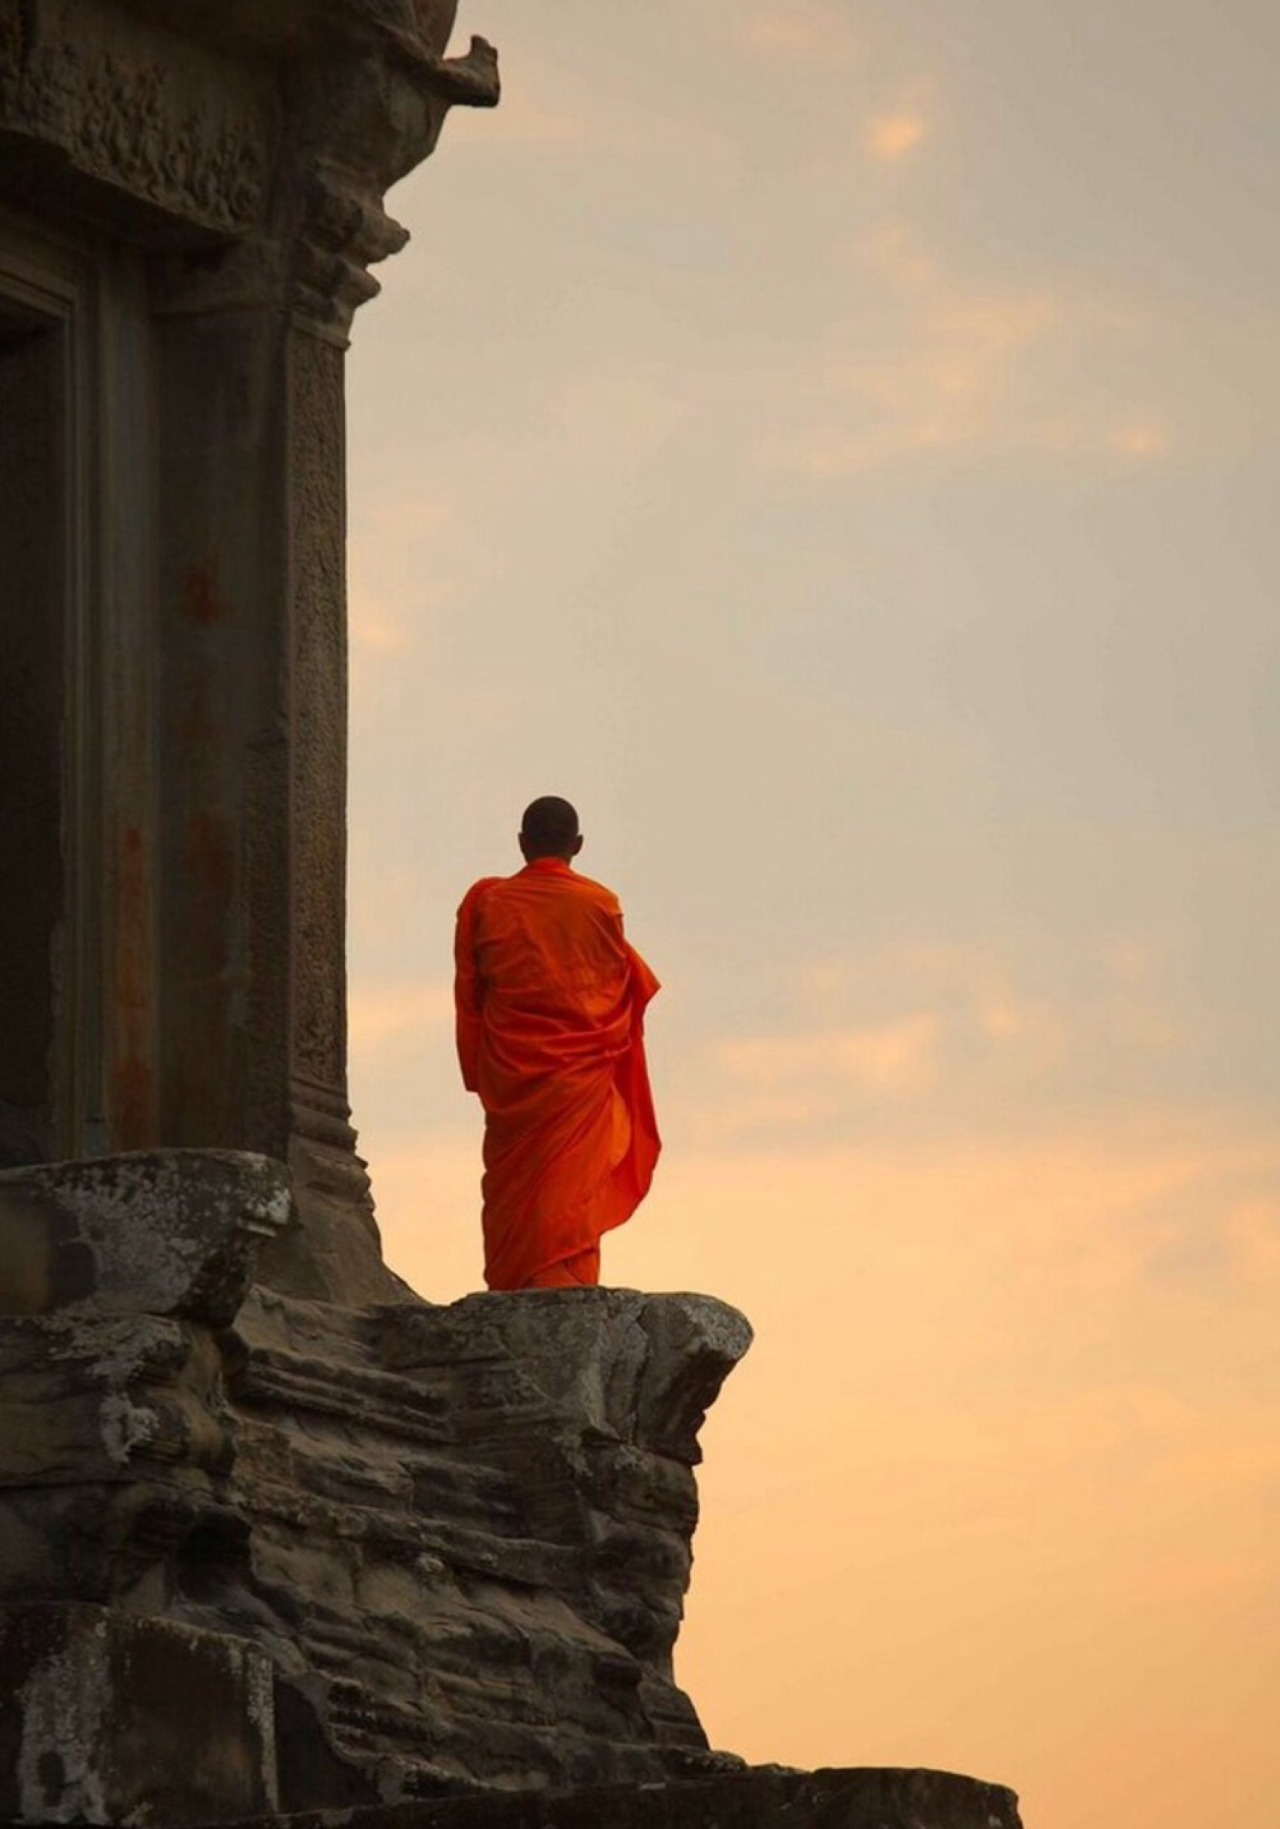 monks wallpaper downloadwallpaperorg